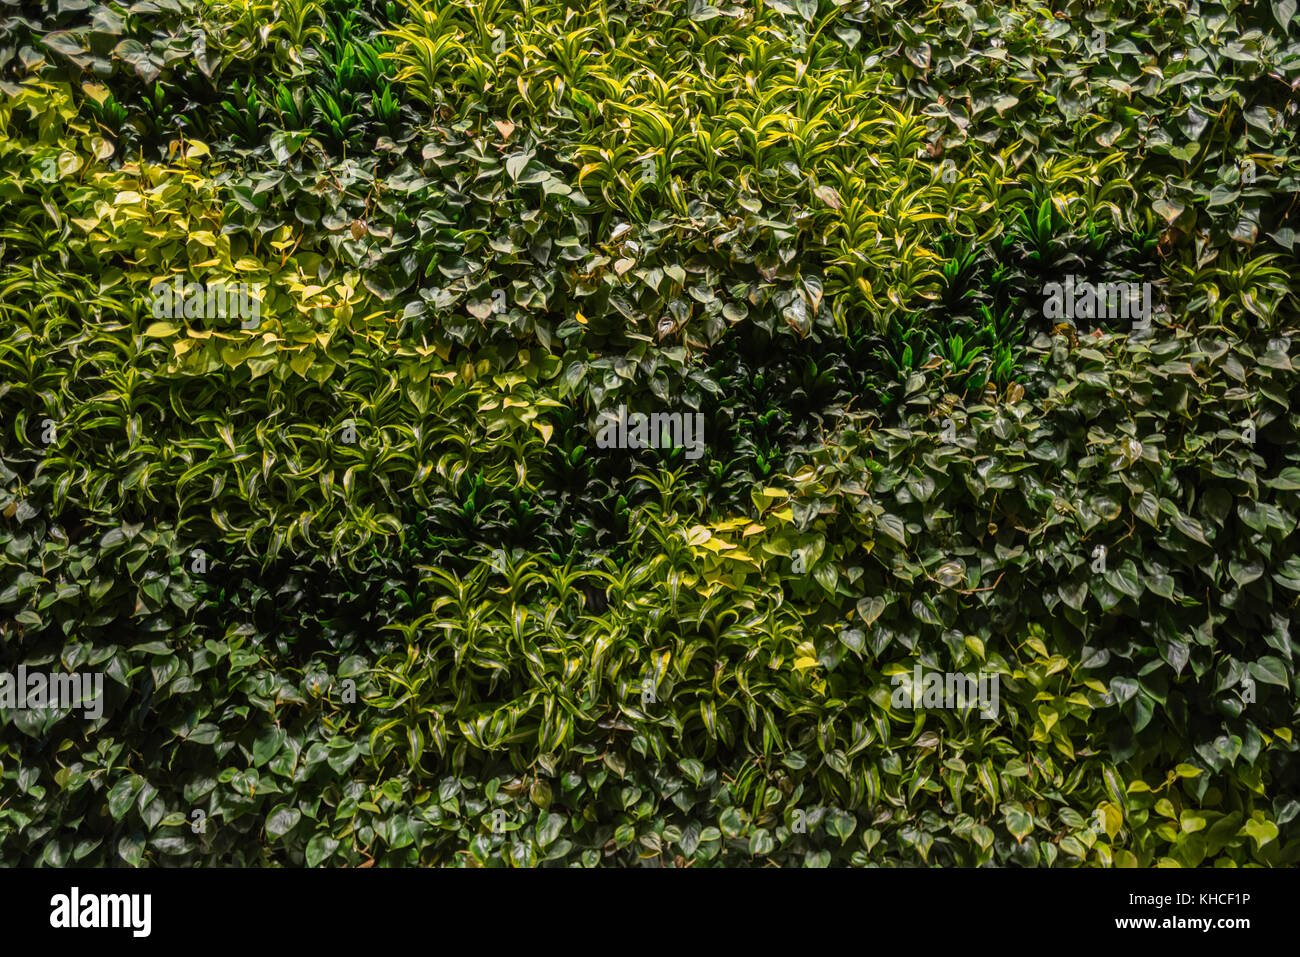 Green Wall Planting with subtle variation across wall - Stock Image